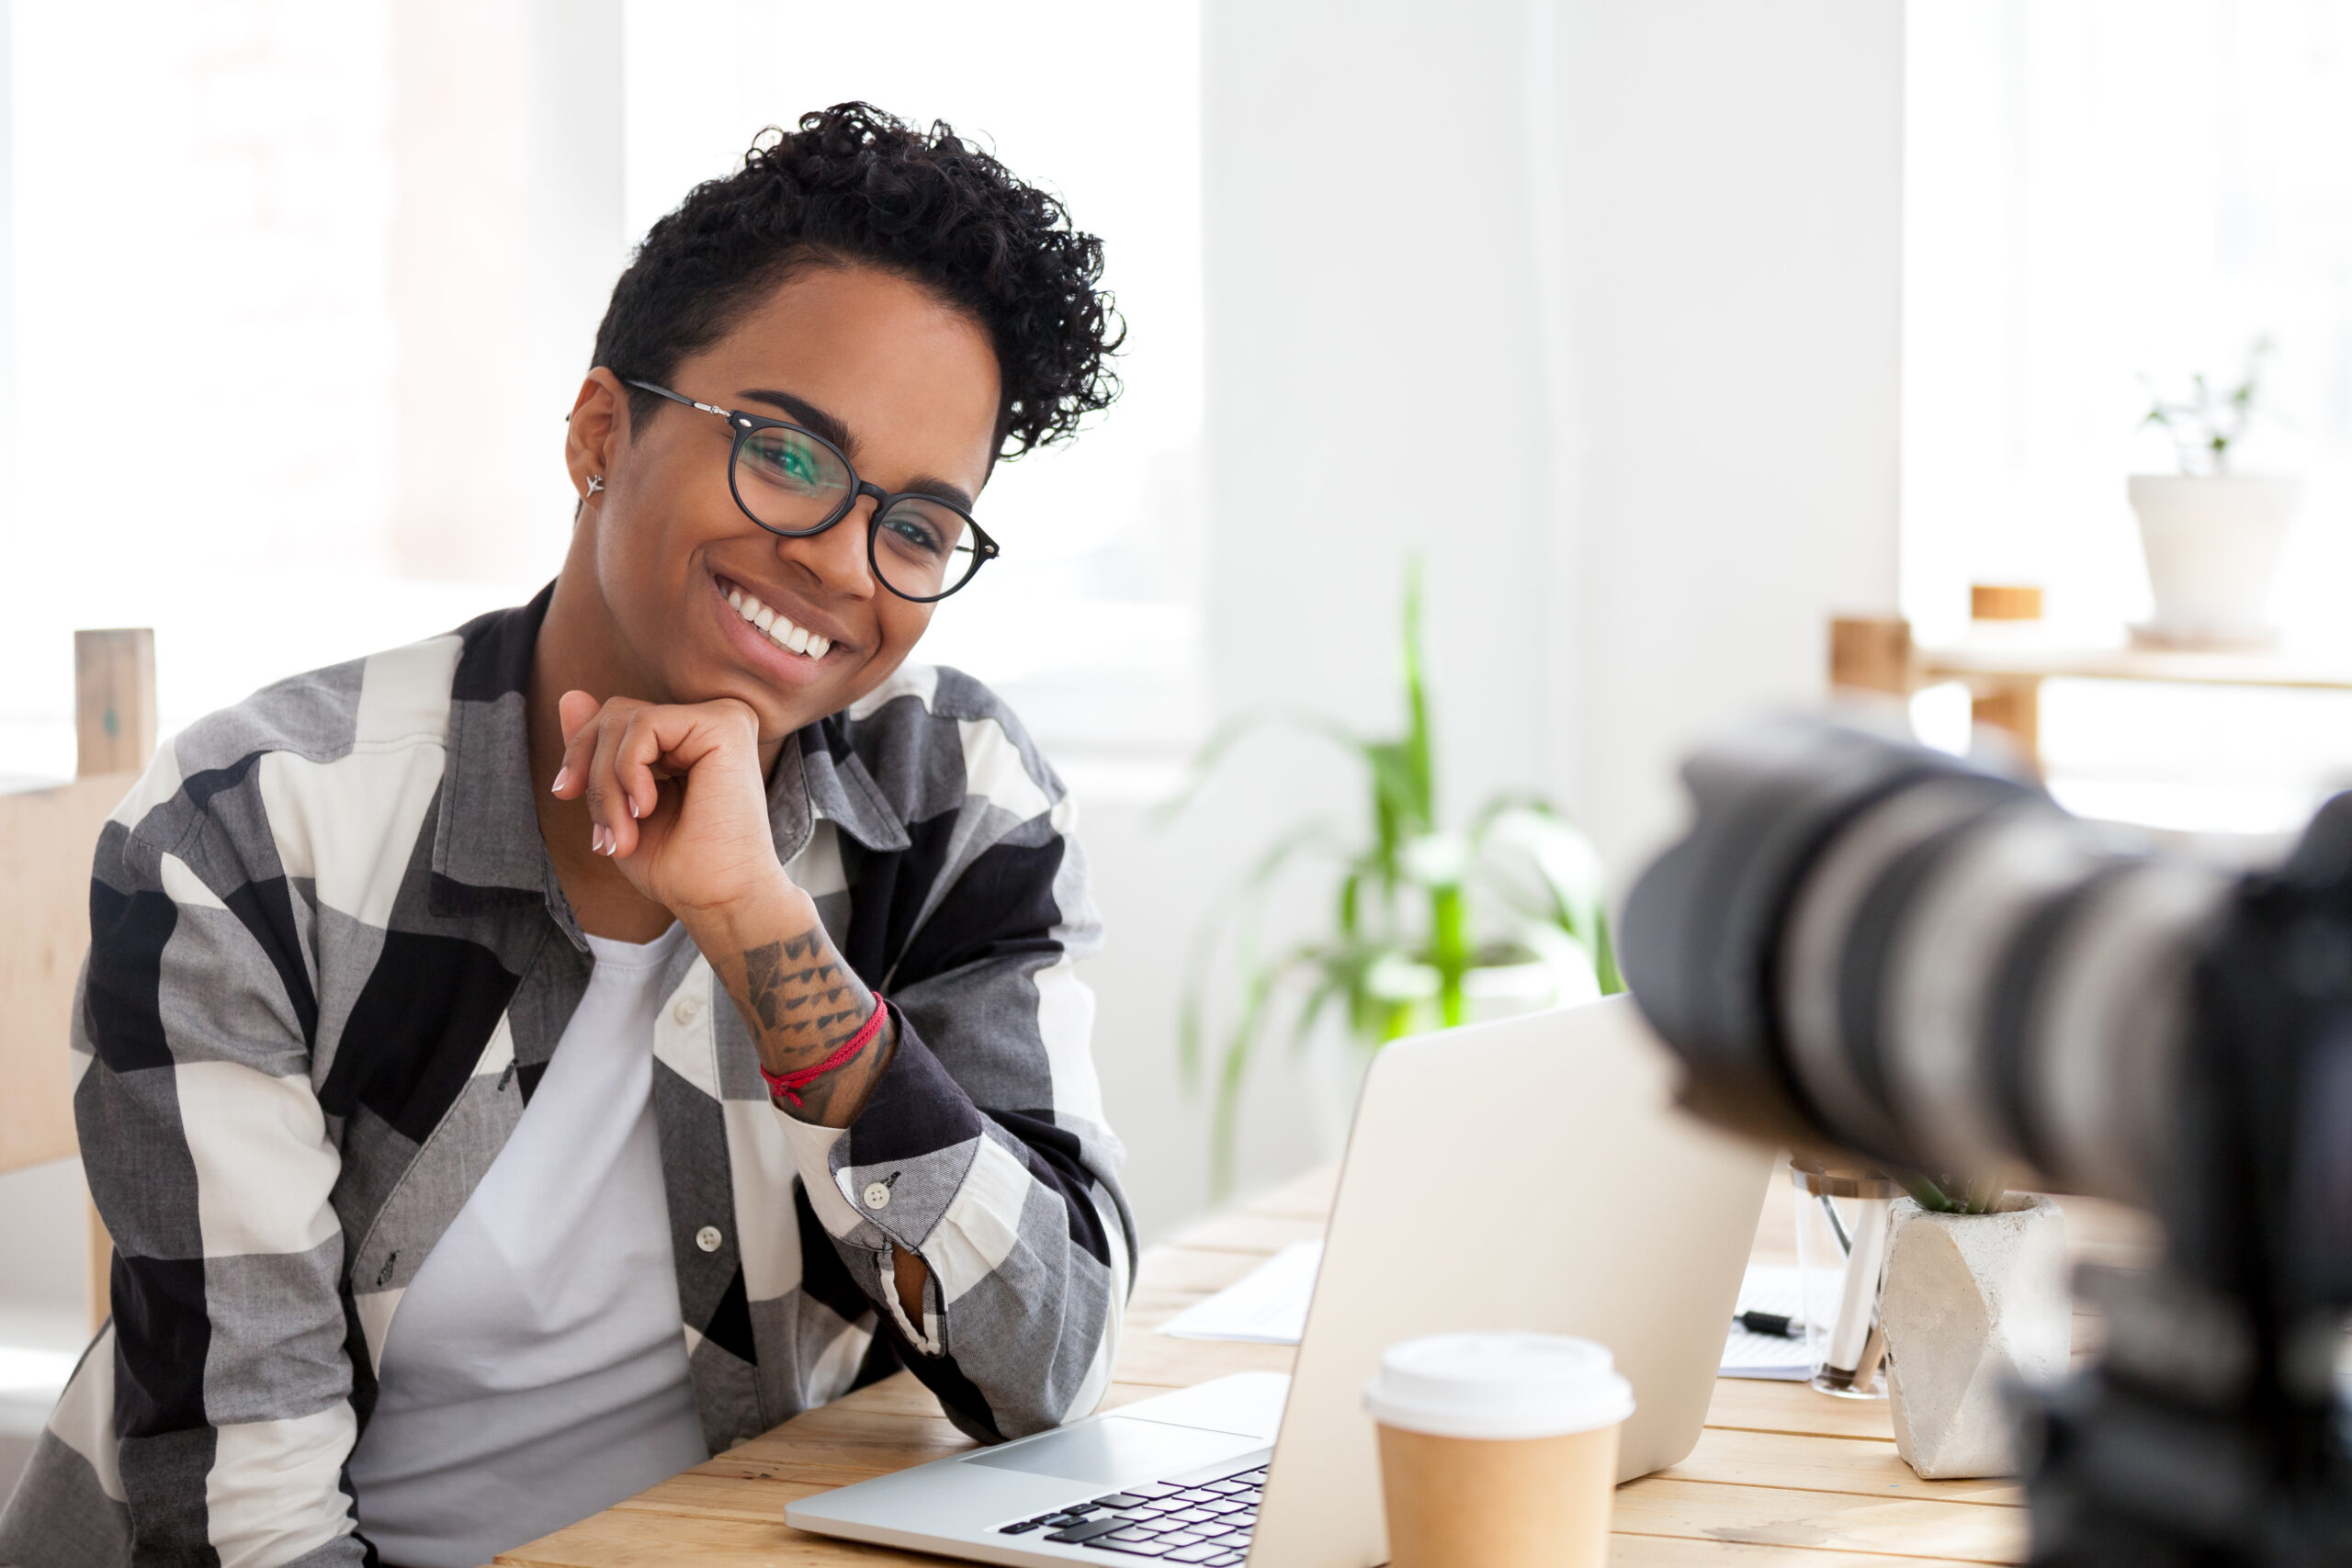 Smiling African American female blogger sit at office desk shooting video, excited black millennial woman look at camera making live broadcast or filming webinar, mixed race girl give interview